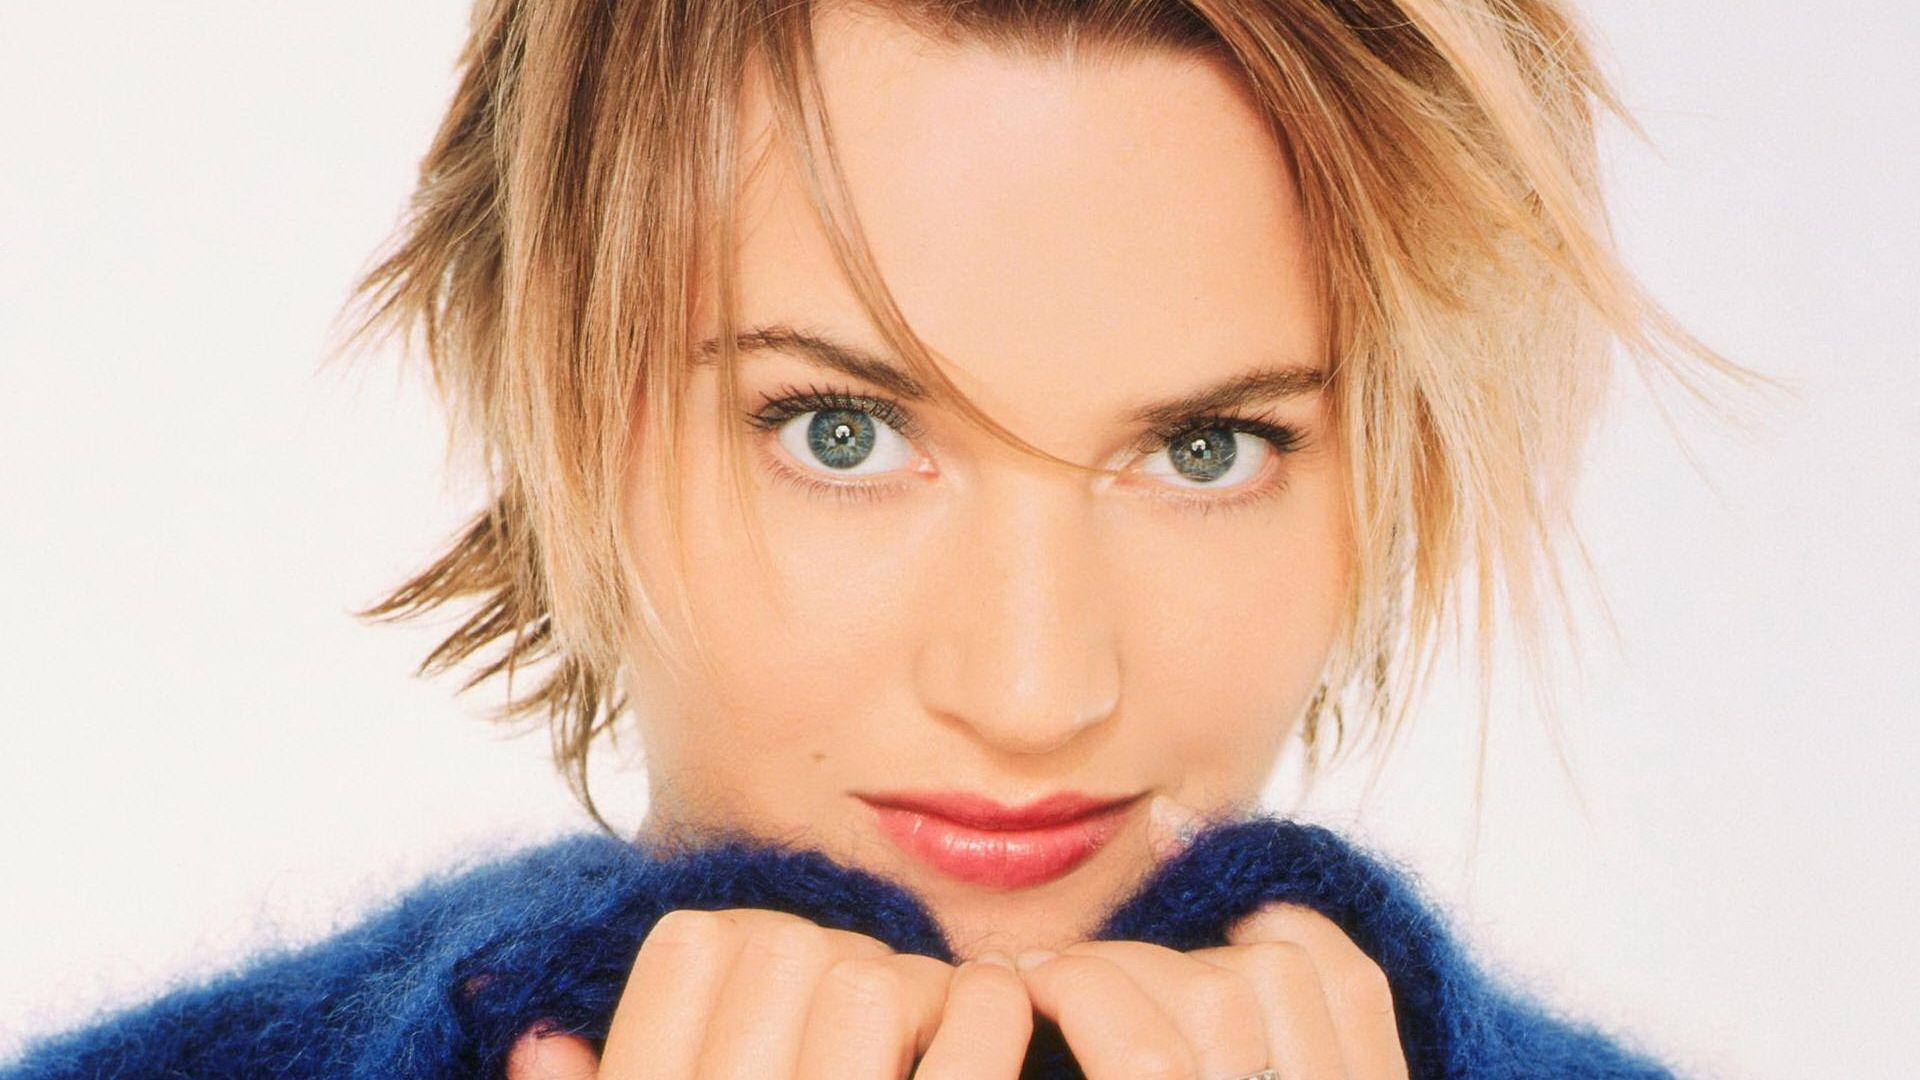 Kate Winslet Wallpapers, Pictures, Images